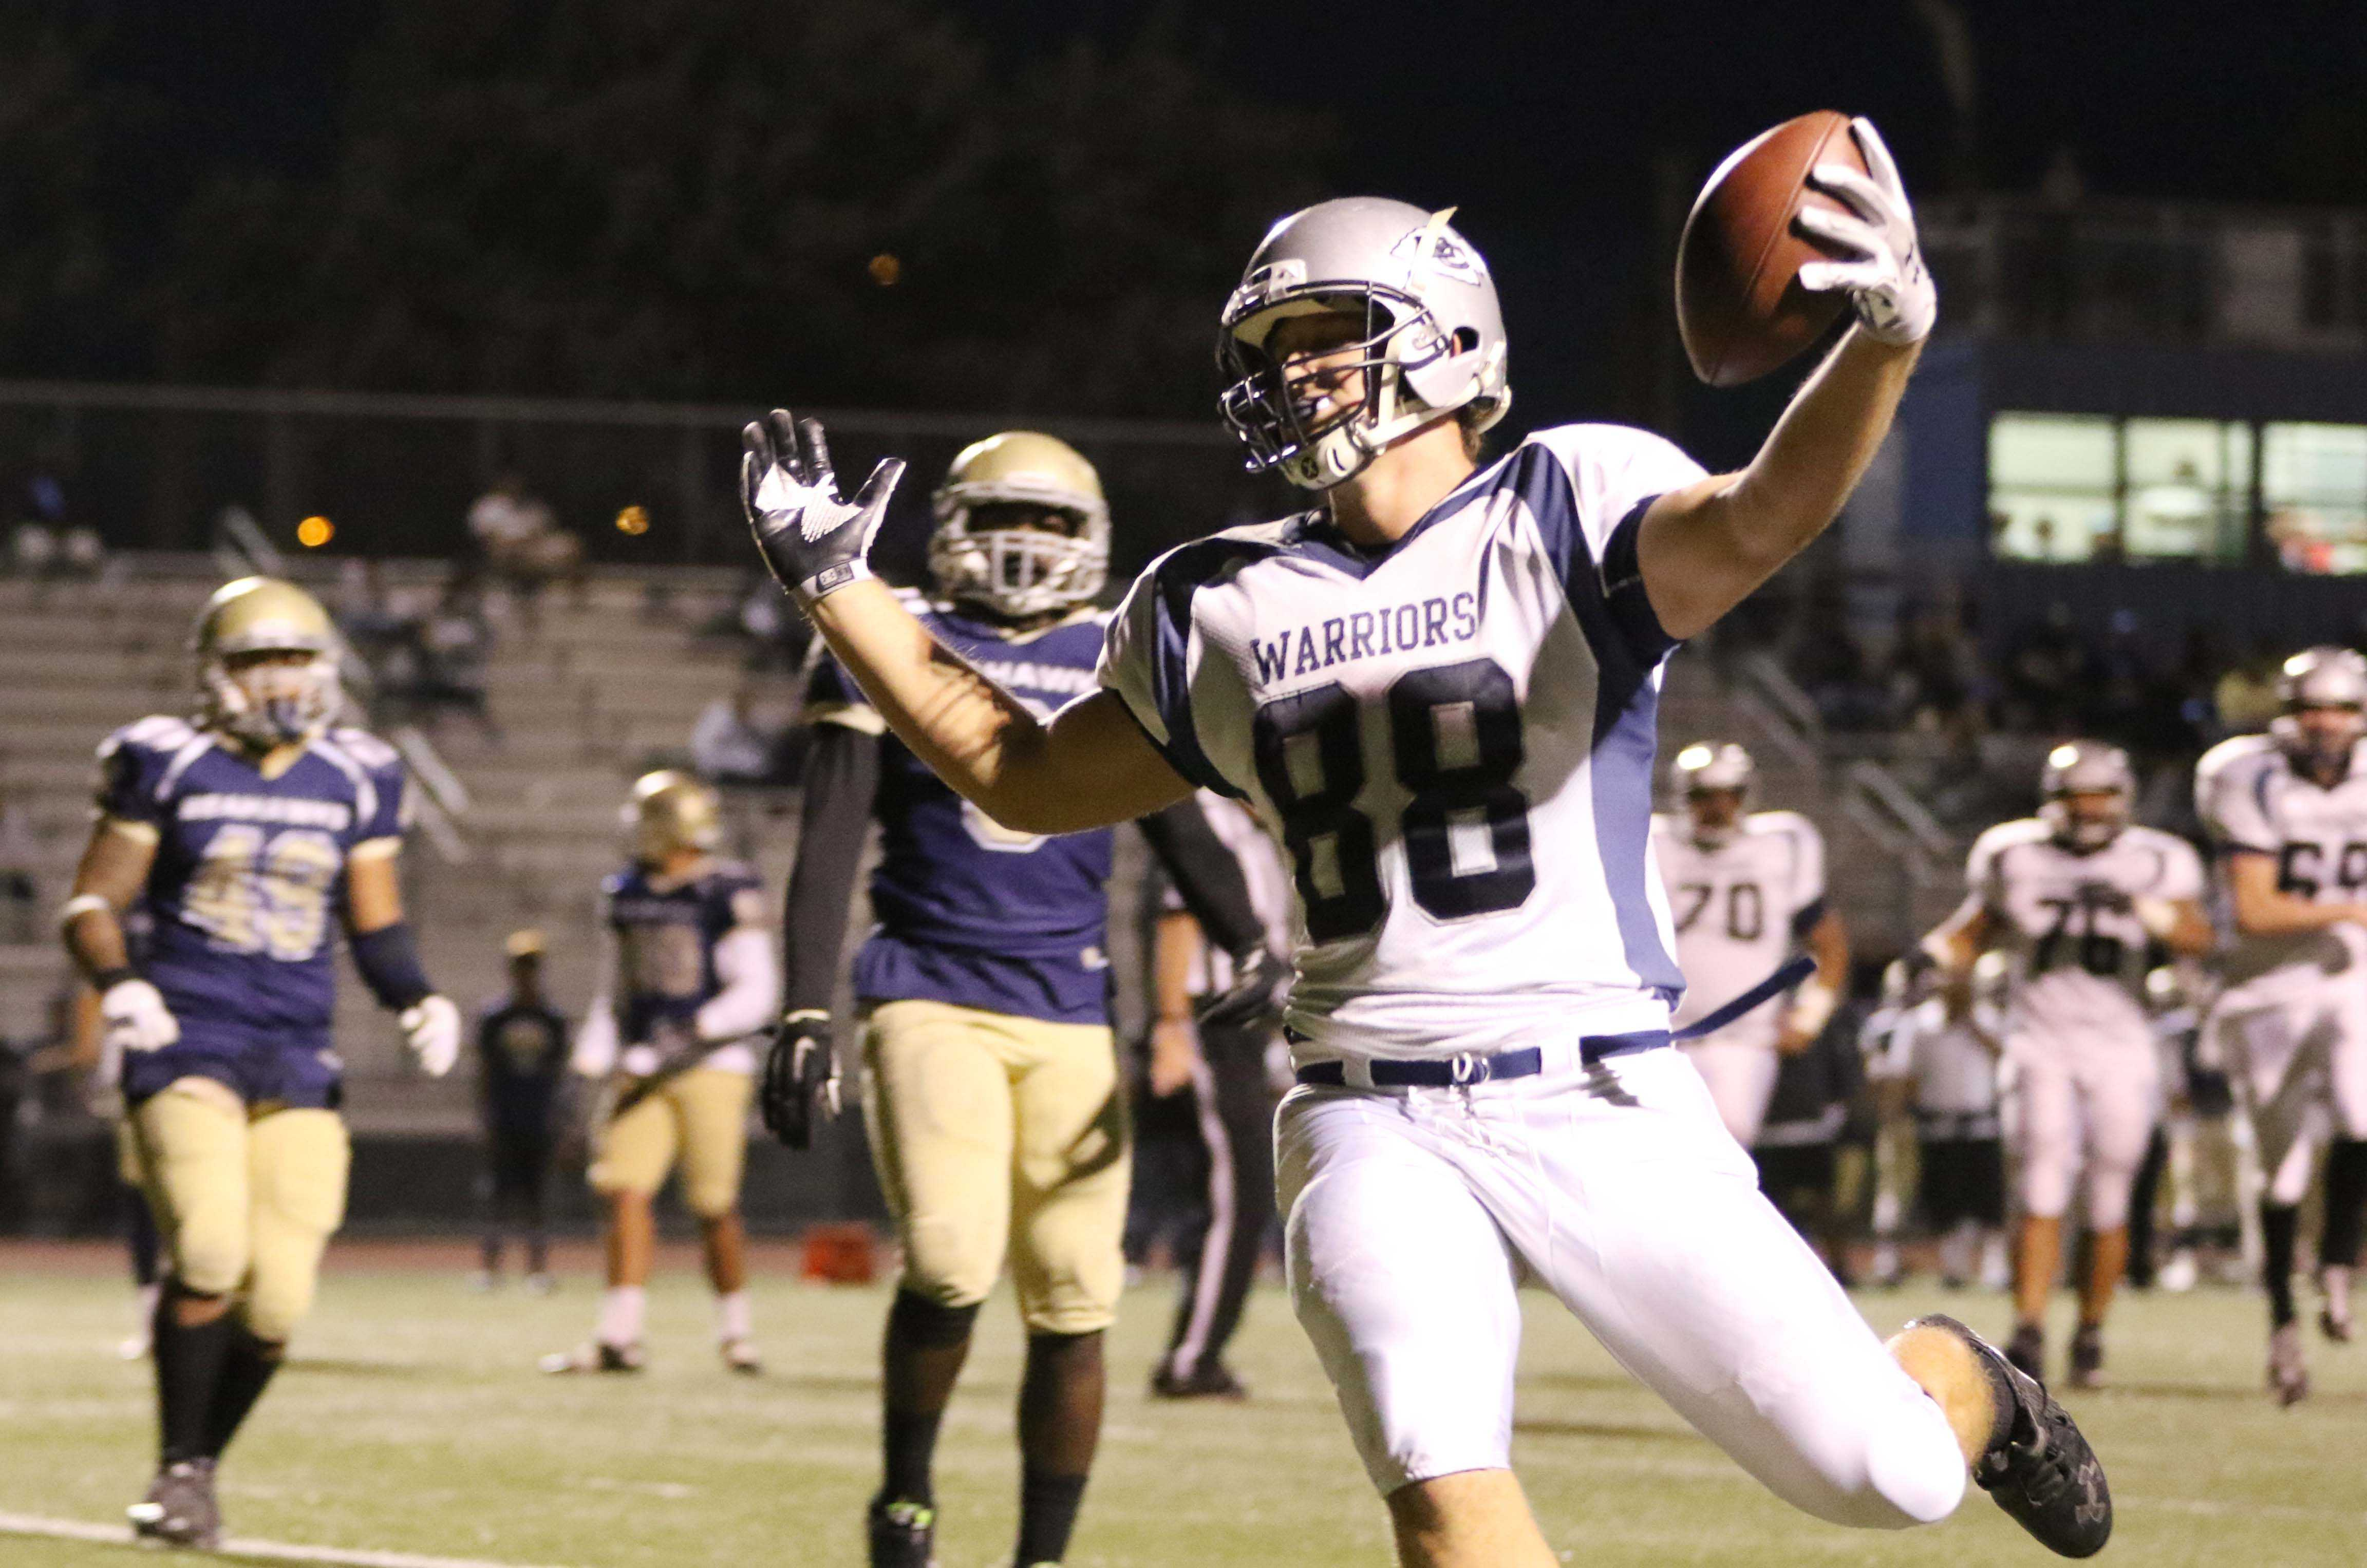 Football avoids losing three games in a row with a victory over rival L.A. Harbor.